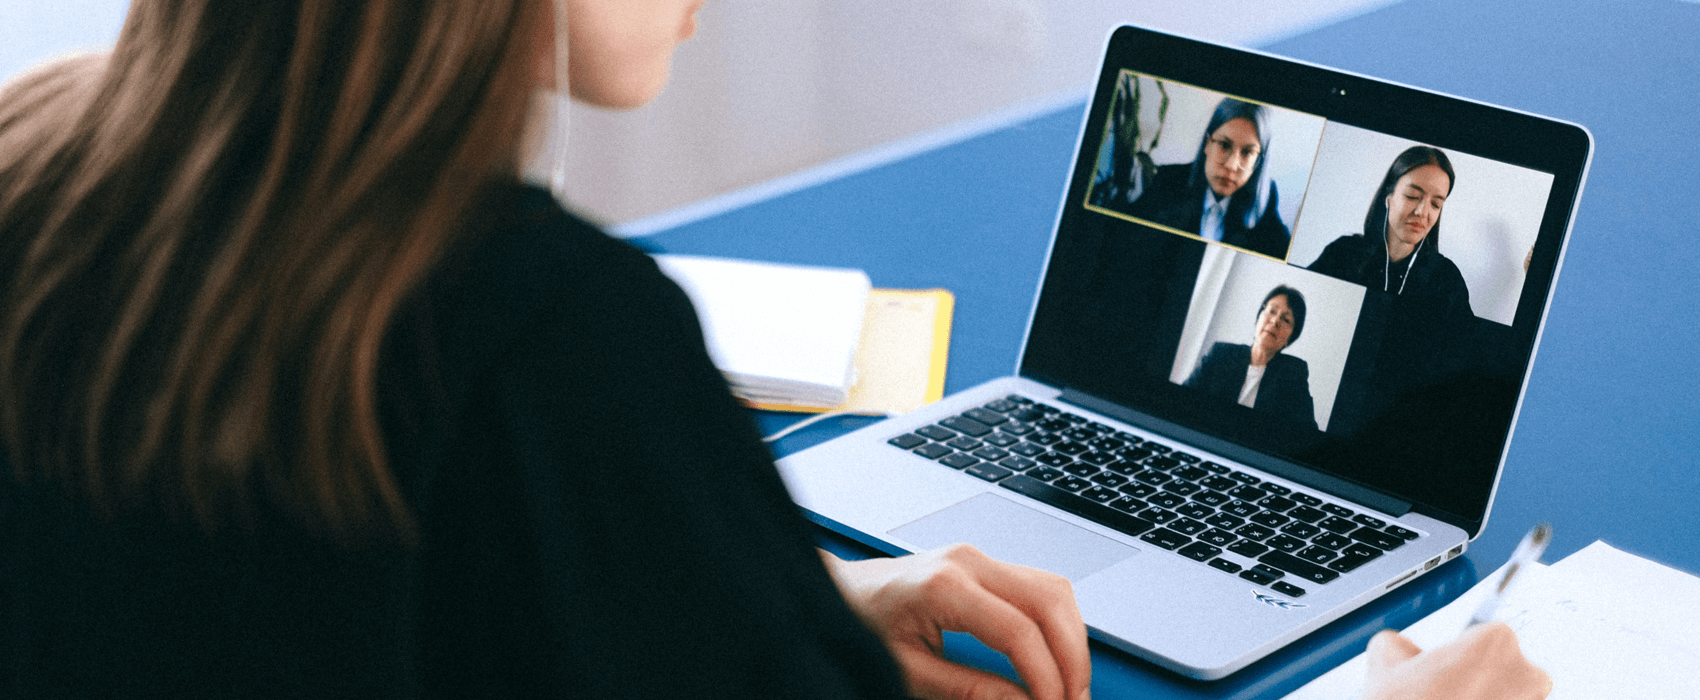 5 Ways Upside is Helping Business Travelers During COVID-19